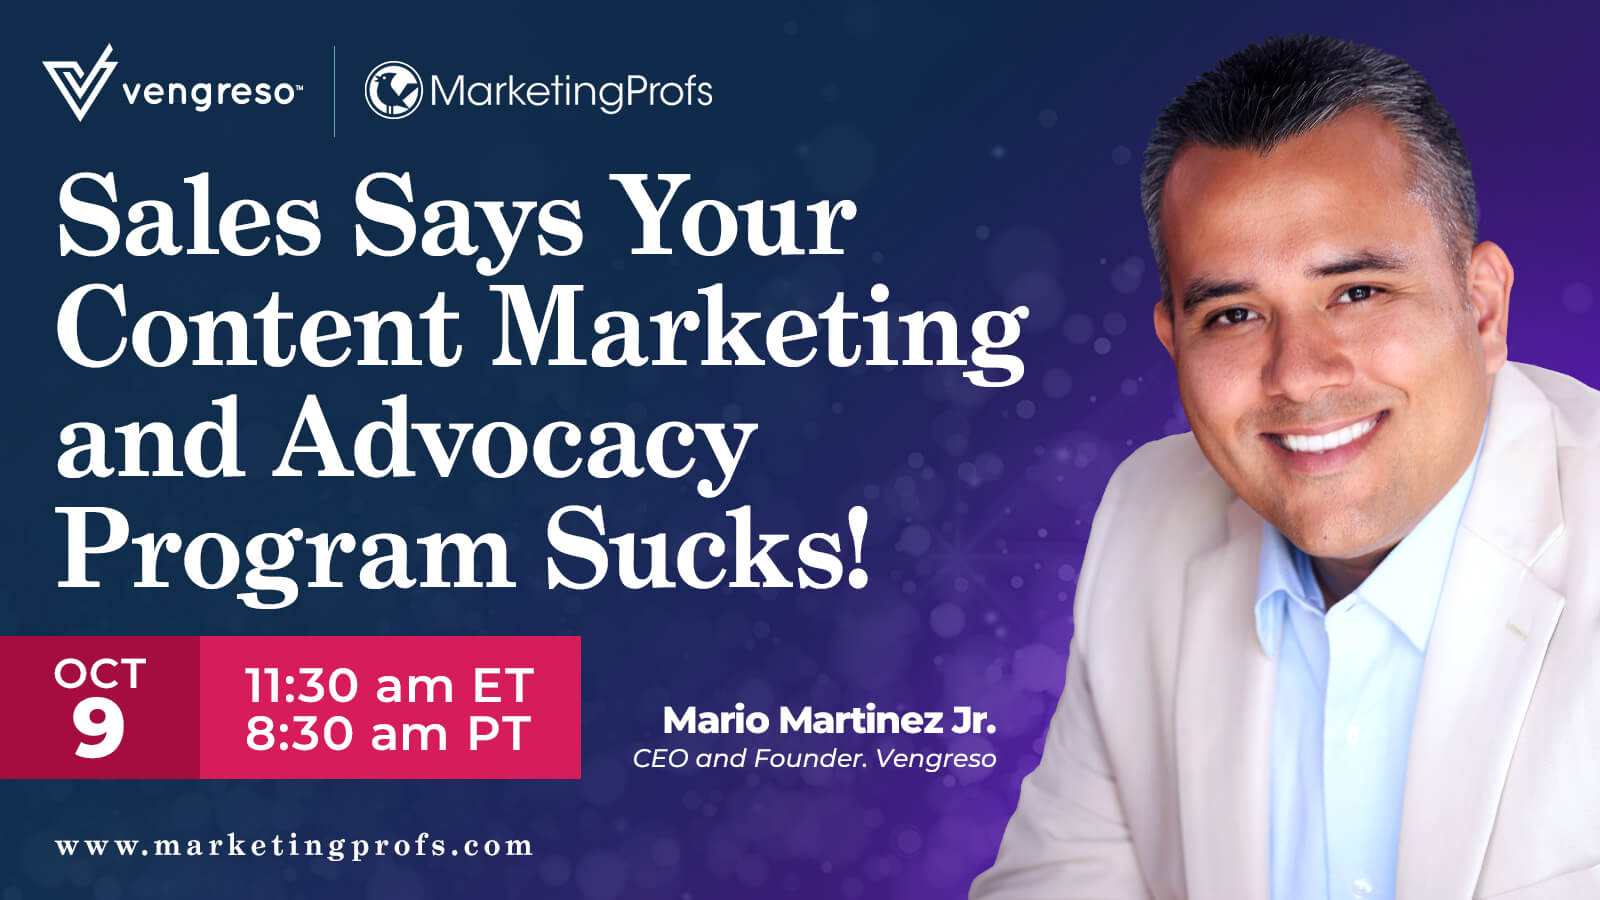 Join Mario Martinez, Jr. for Sales Says Your Content Marketing and Advocacy Program Sucks!